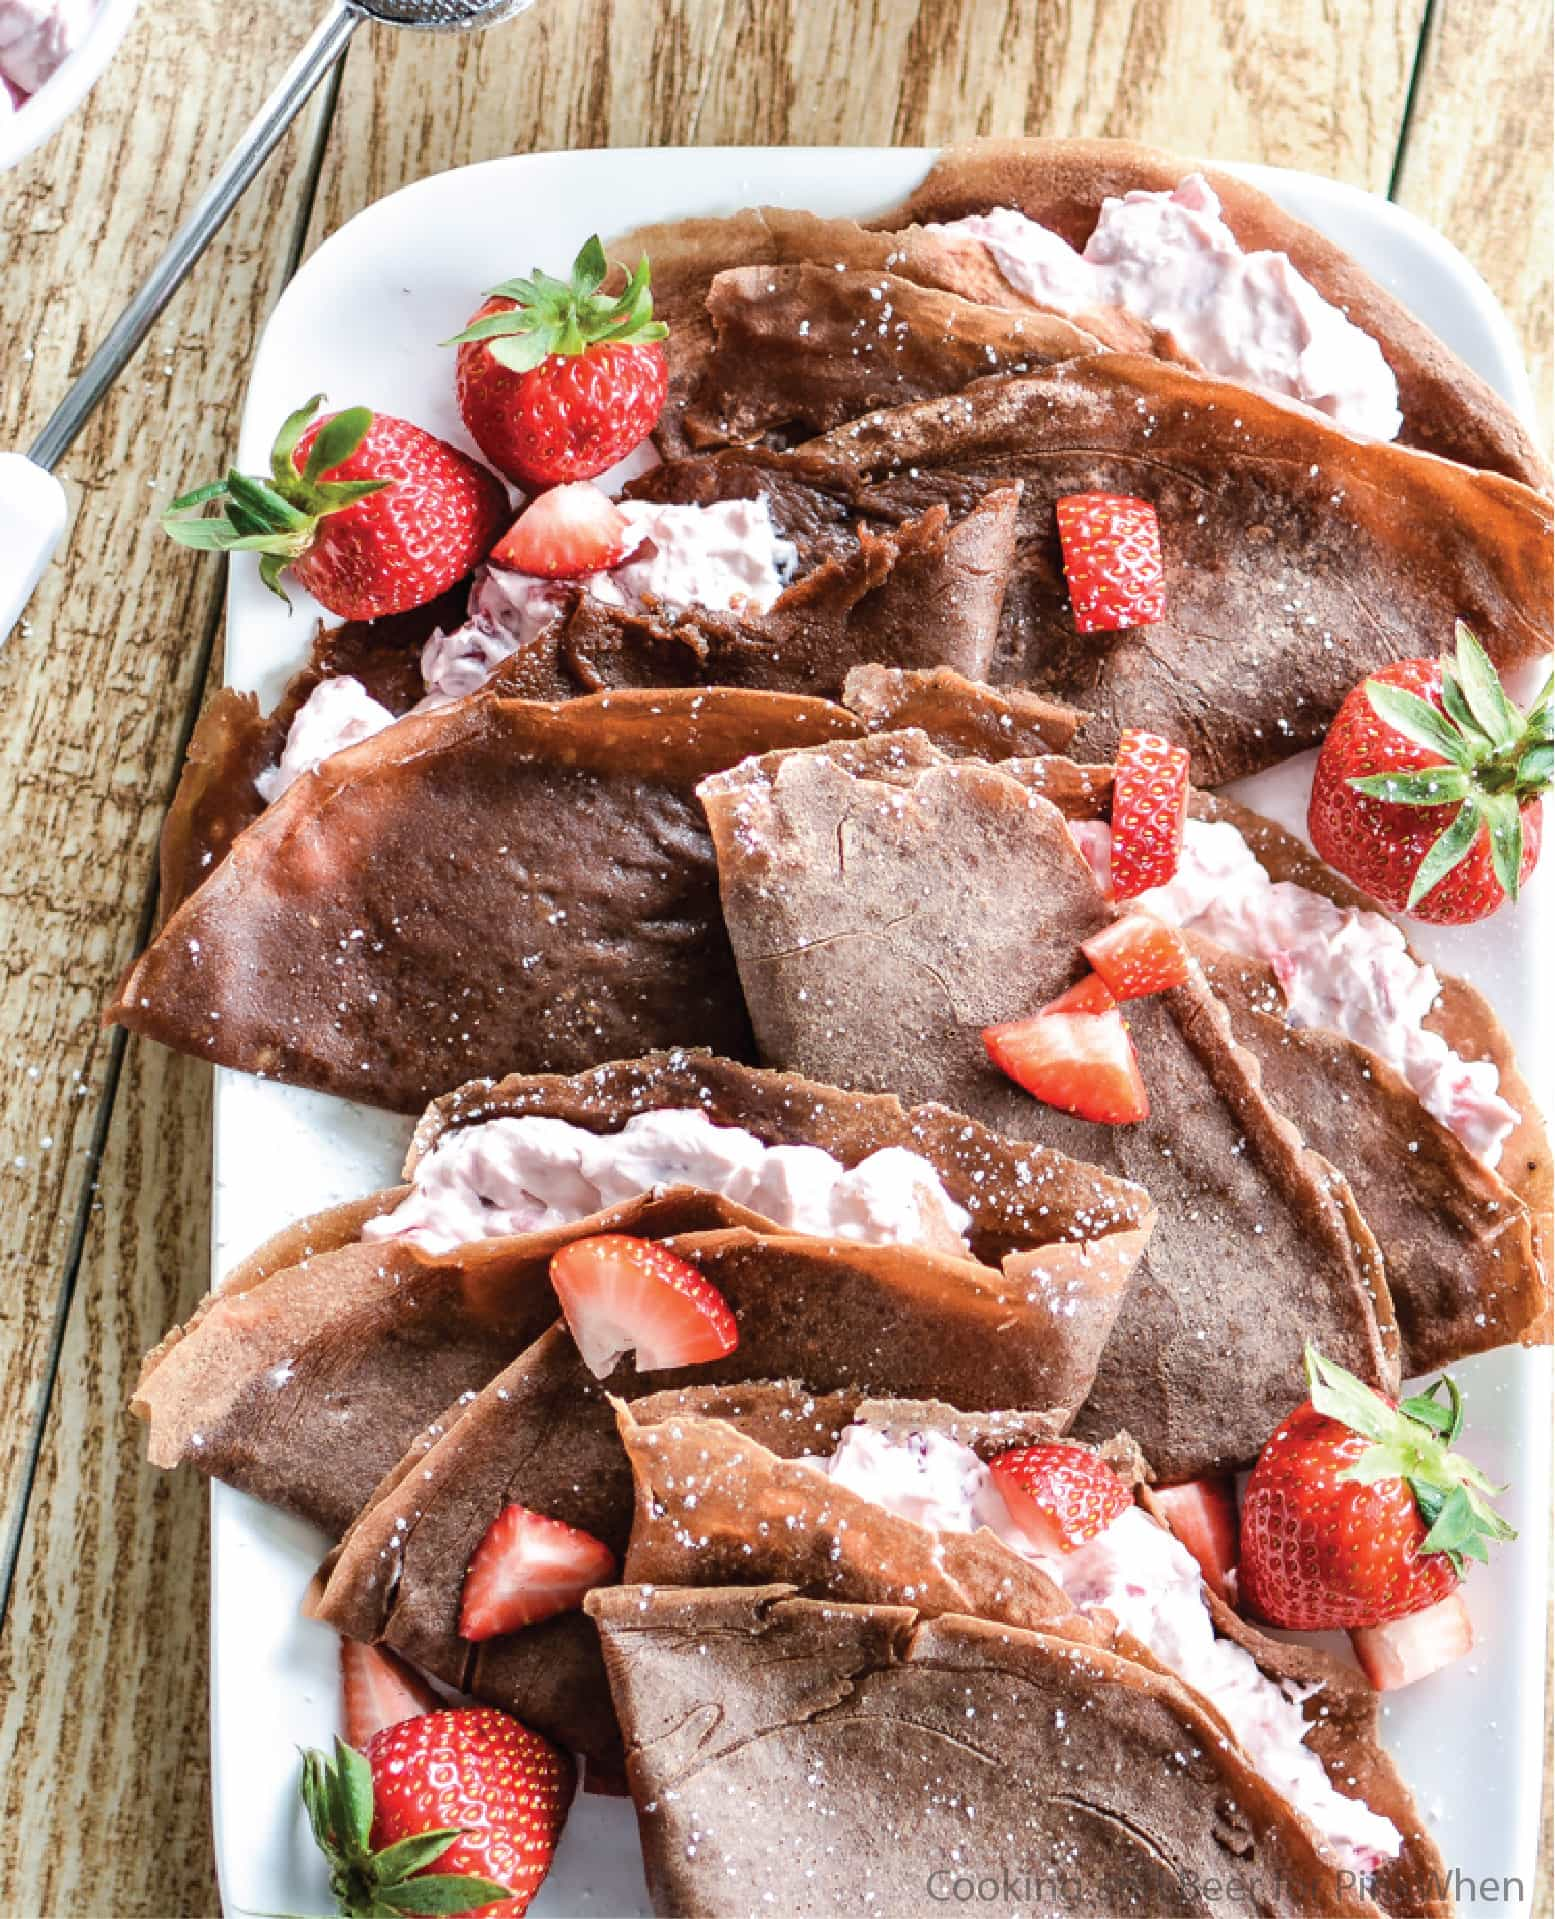 Strawberry Cheesecake Chocolate Crepes